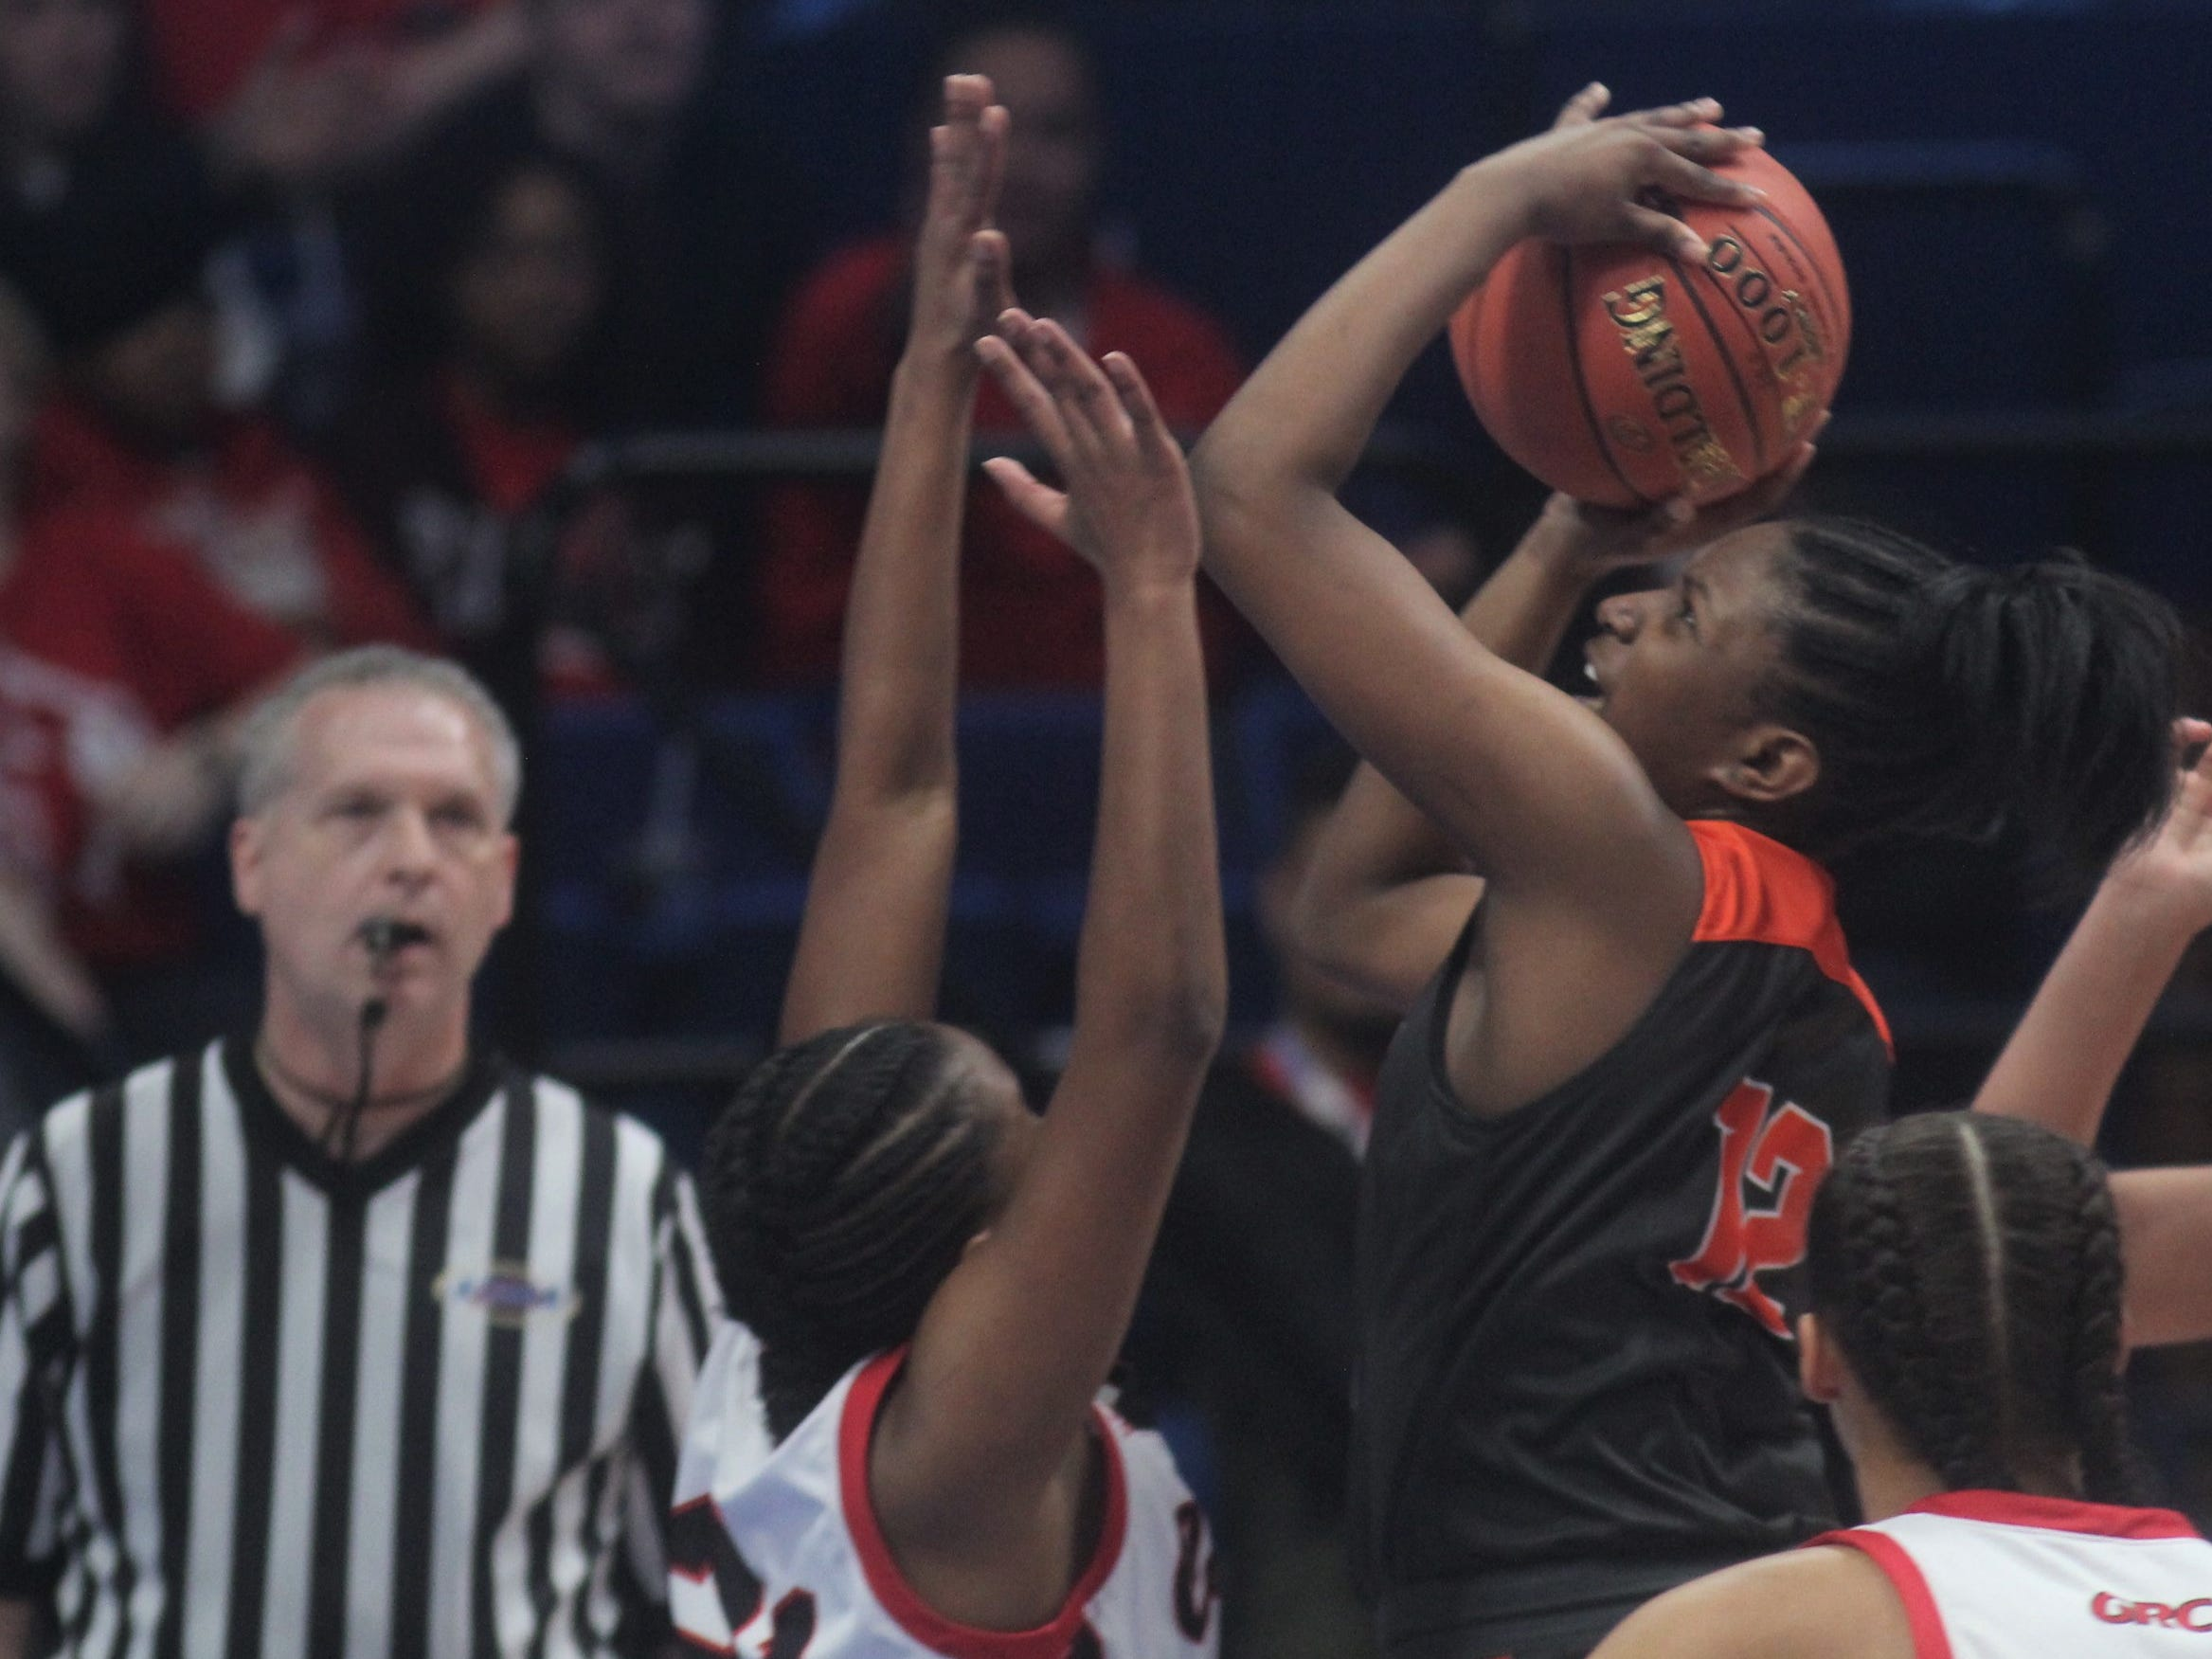 Ryle's Austin Johnson puts up a shot as Ryle defeated George Rogers Clark 64-51 in the state quarterfinals of the KHSAA Sweet 16 girls basketball tournament March 15, 2019 at Rupp Arena, Lexington KY.